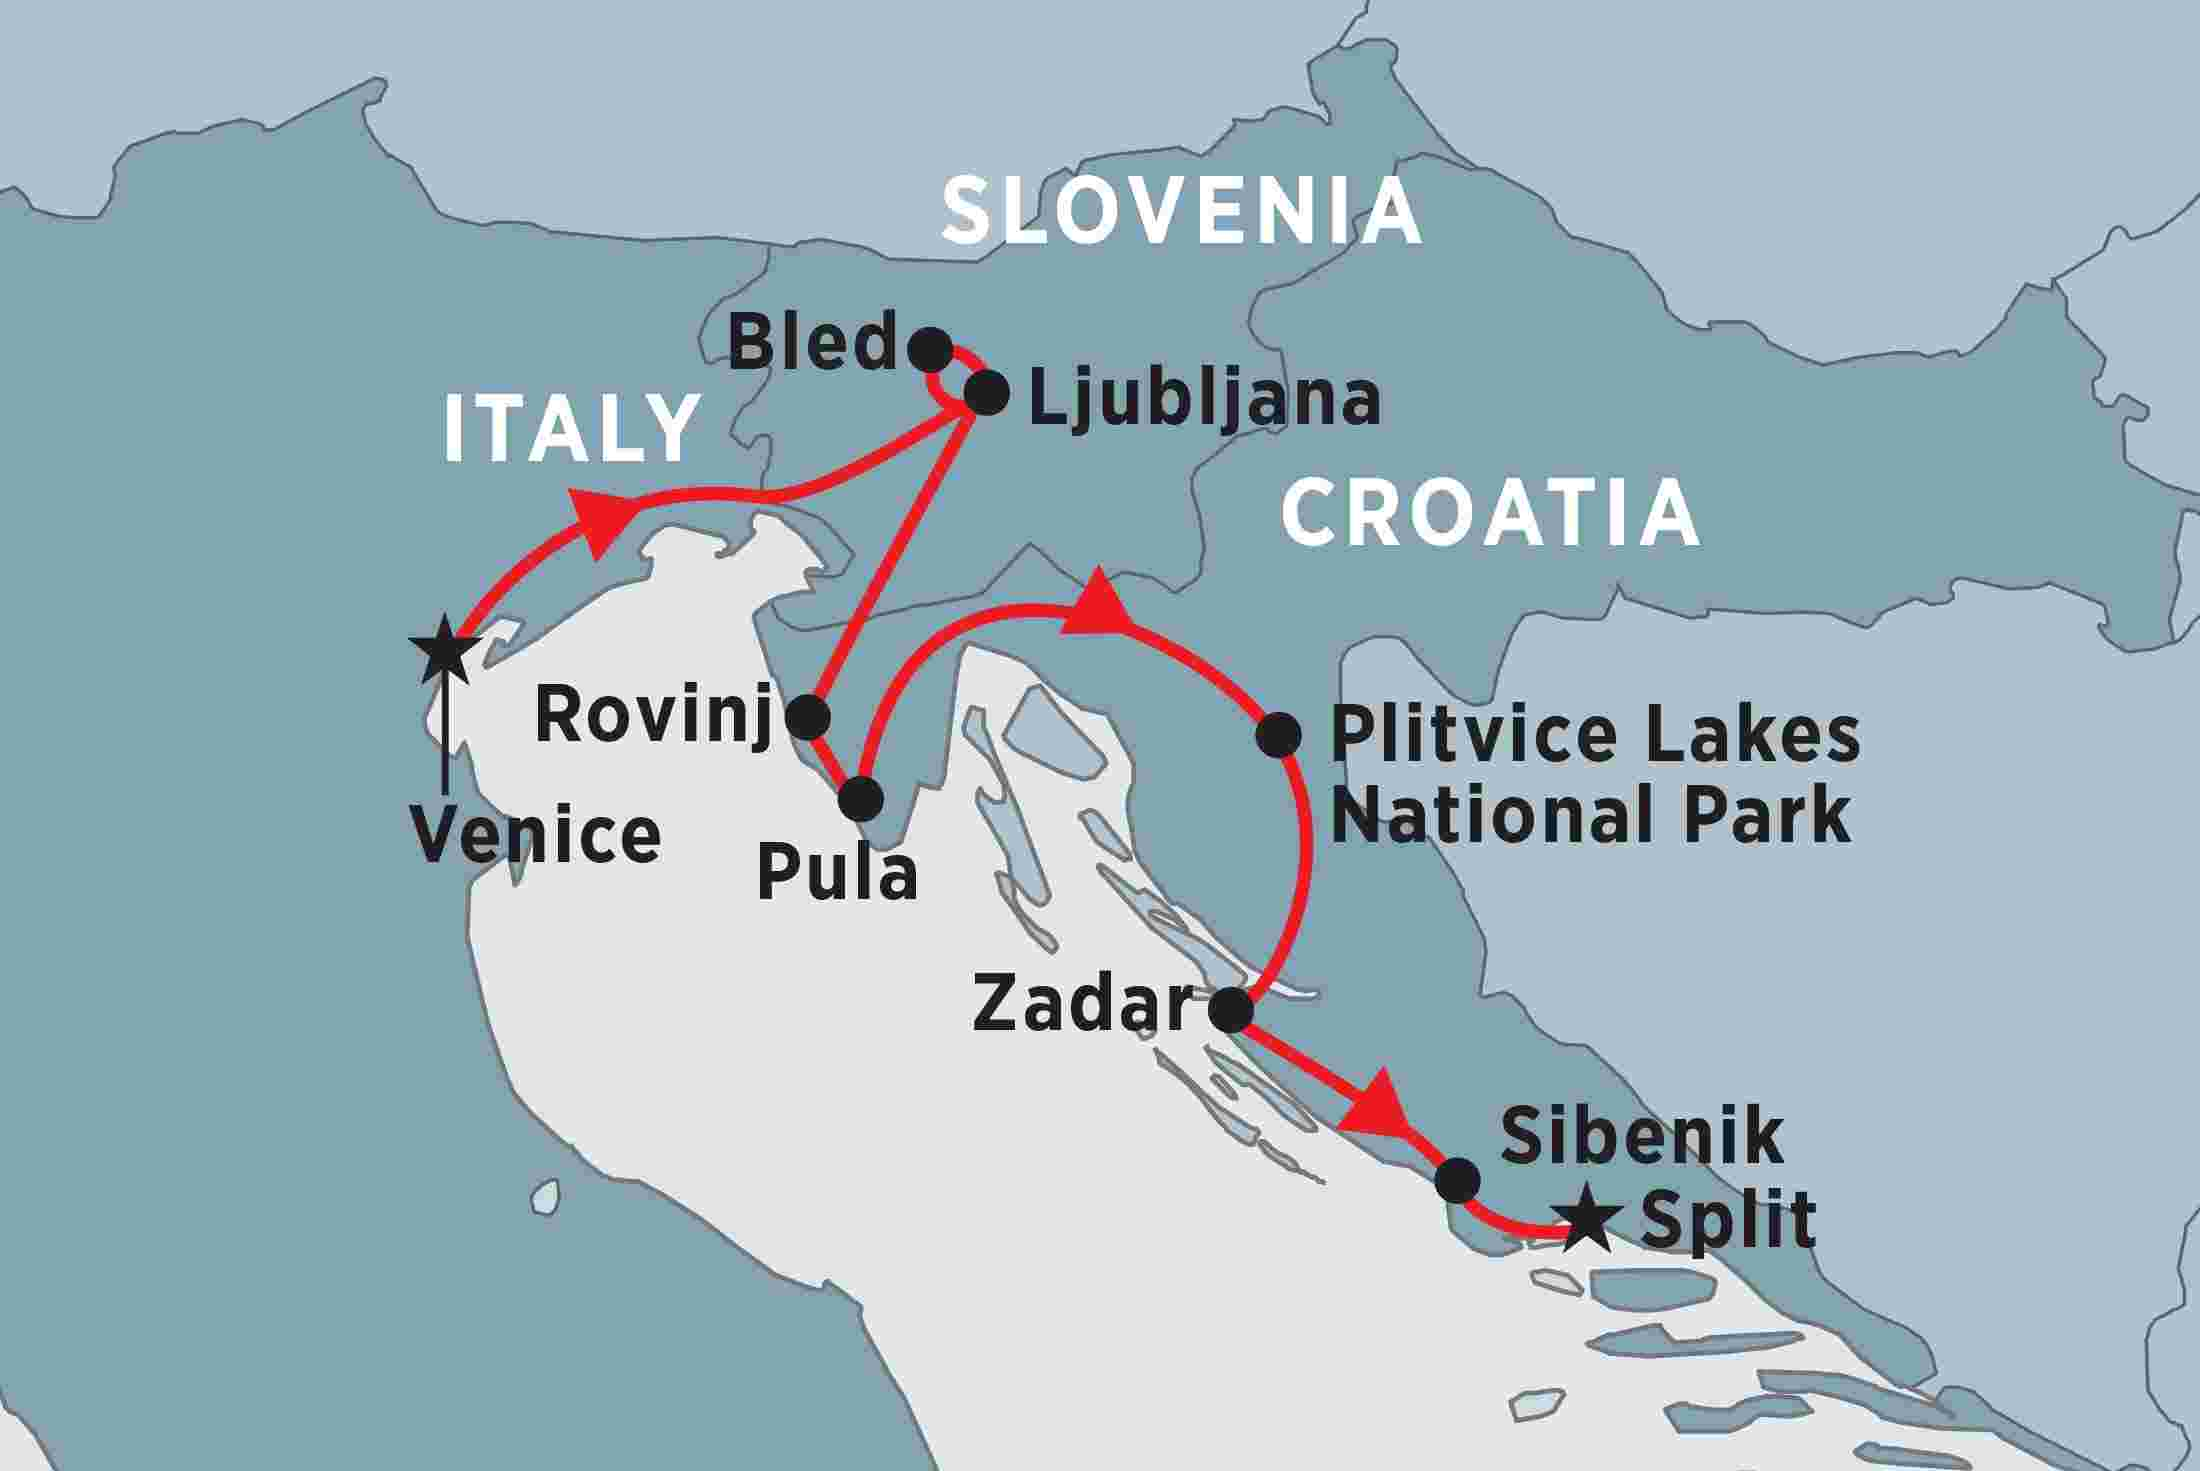 Adriatic Cruise   Croatia   Venice   K220 besides  besides Map Croatia Shows Country Borders Urban Stock Vector  Royalty Free as well  together with September 2017 ⇸ Journey through Central Europe   The Wanderlust also Croatia Map   Visit Croatia as well Italy to Croatia Ferries   Ferry  panies and Routes   Split in addition Croatia Map   Infoplease moreover How to Get from Italy to Croatia by Plane  Ferry  Train or Bus as well Croatia Map and Satellite Image likewise How To Plan a Trip to Europe  S le Travel Itineraries   GO SEEK further Home   Croatia   Italy   Snia   Research Guides at Anderson further Snia   Croatia   Peregrine Adventures AU further Italy And  binations   Trafalgar AU as well  also Adriatic Cruise   Croatia   Venice   K220. on map of croatia and italy